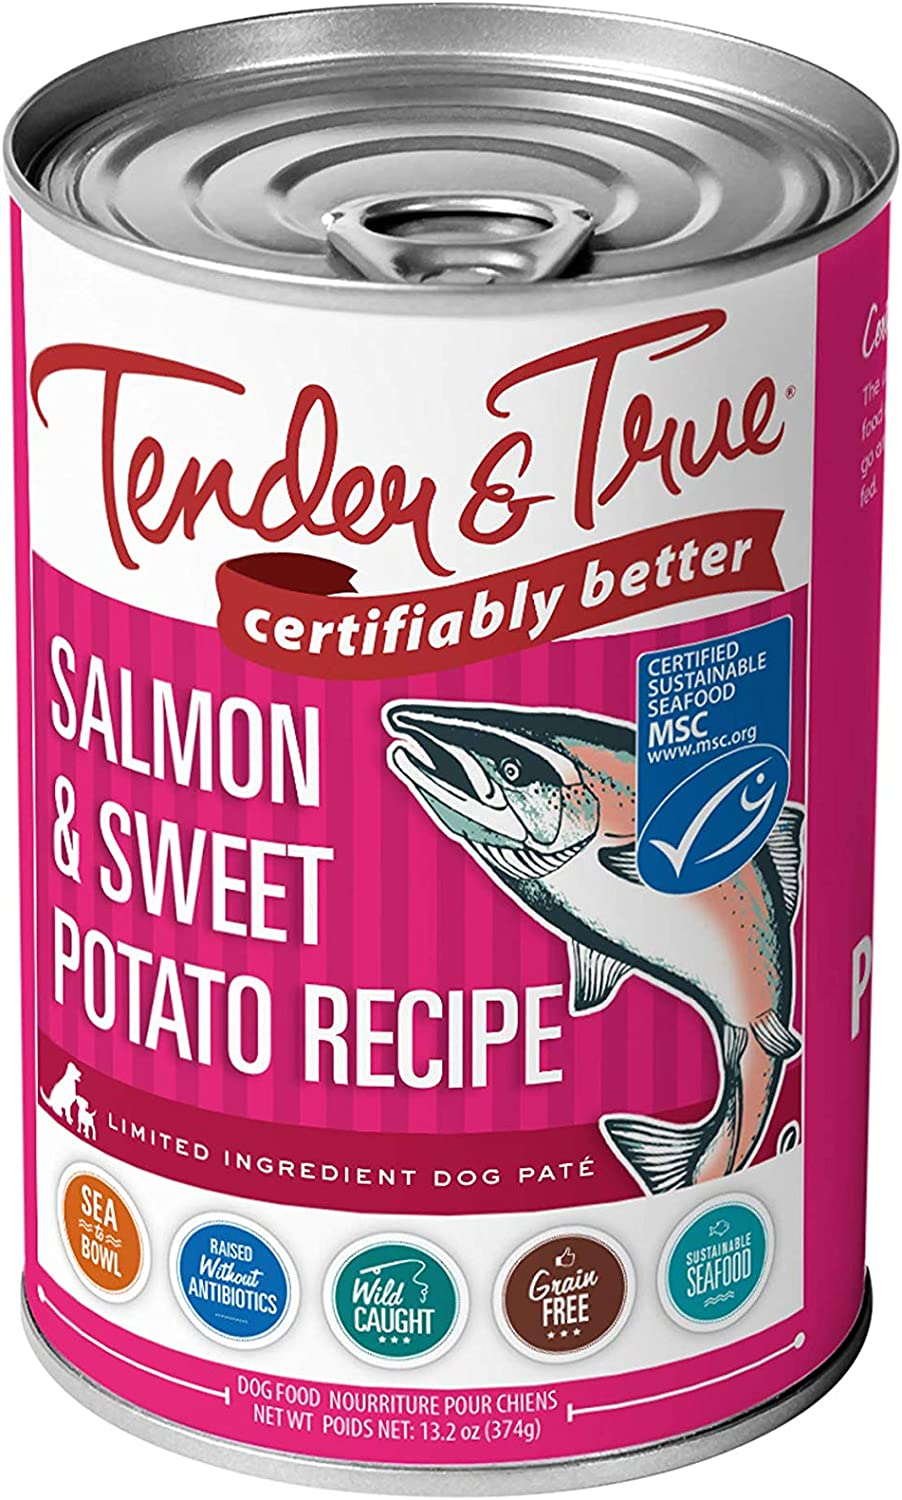 Tender & True Salmon & Sweet Potato Recipe Canned Dog Food, 33031